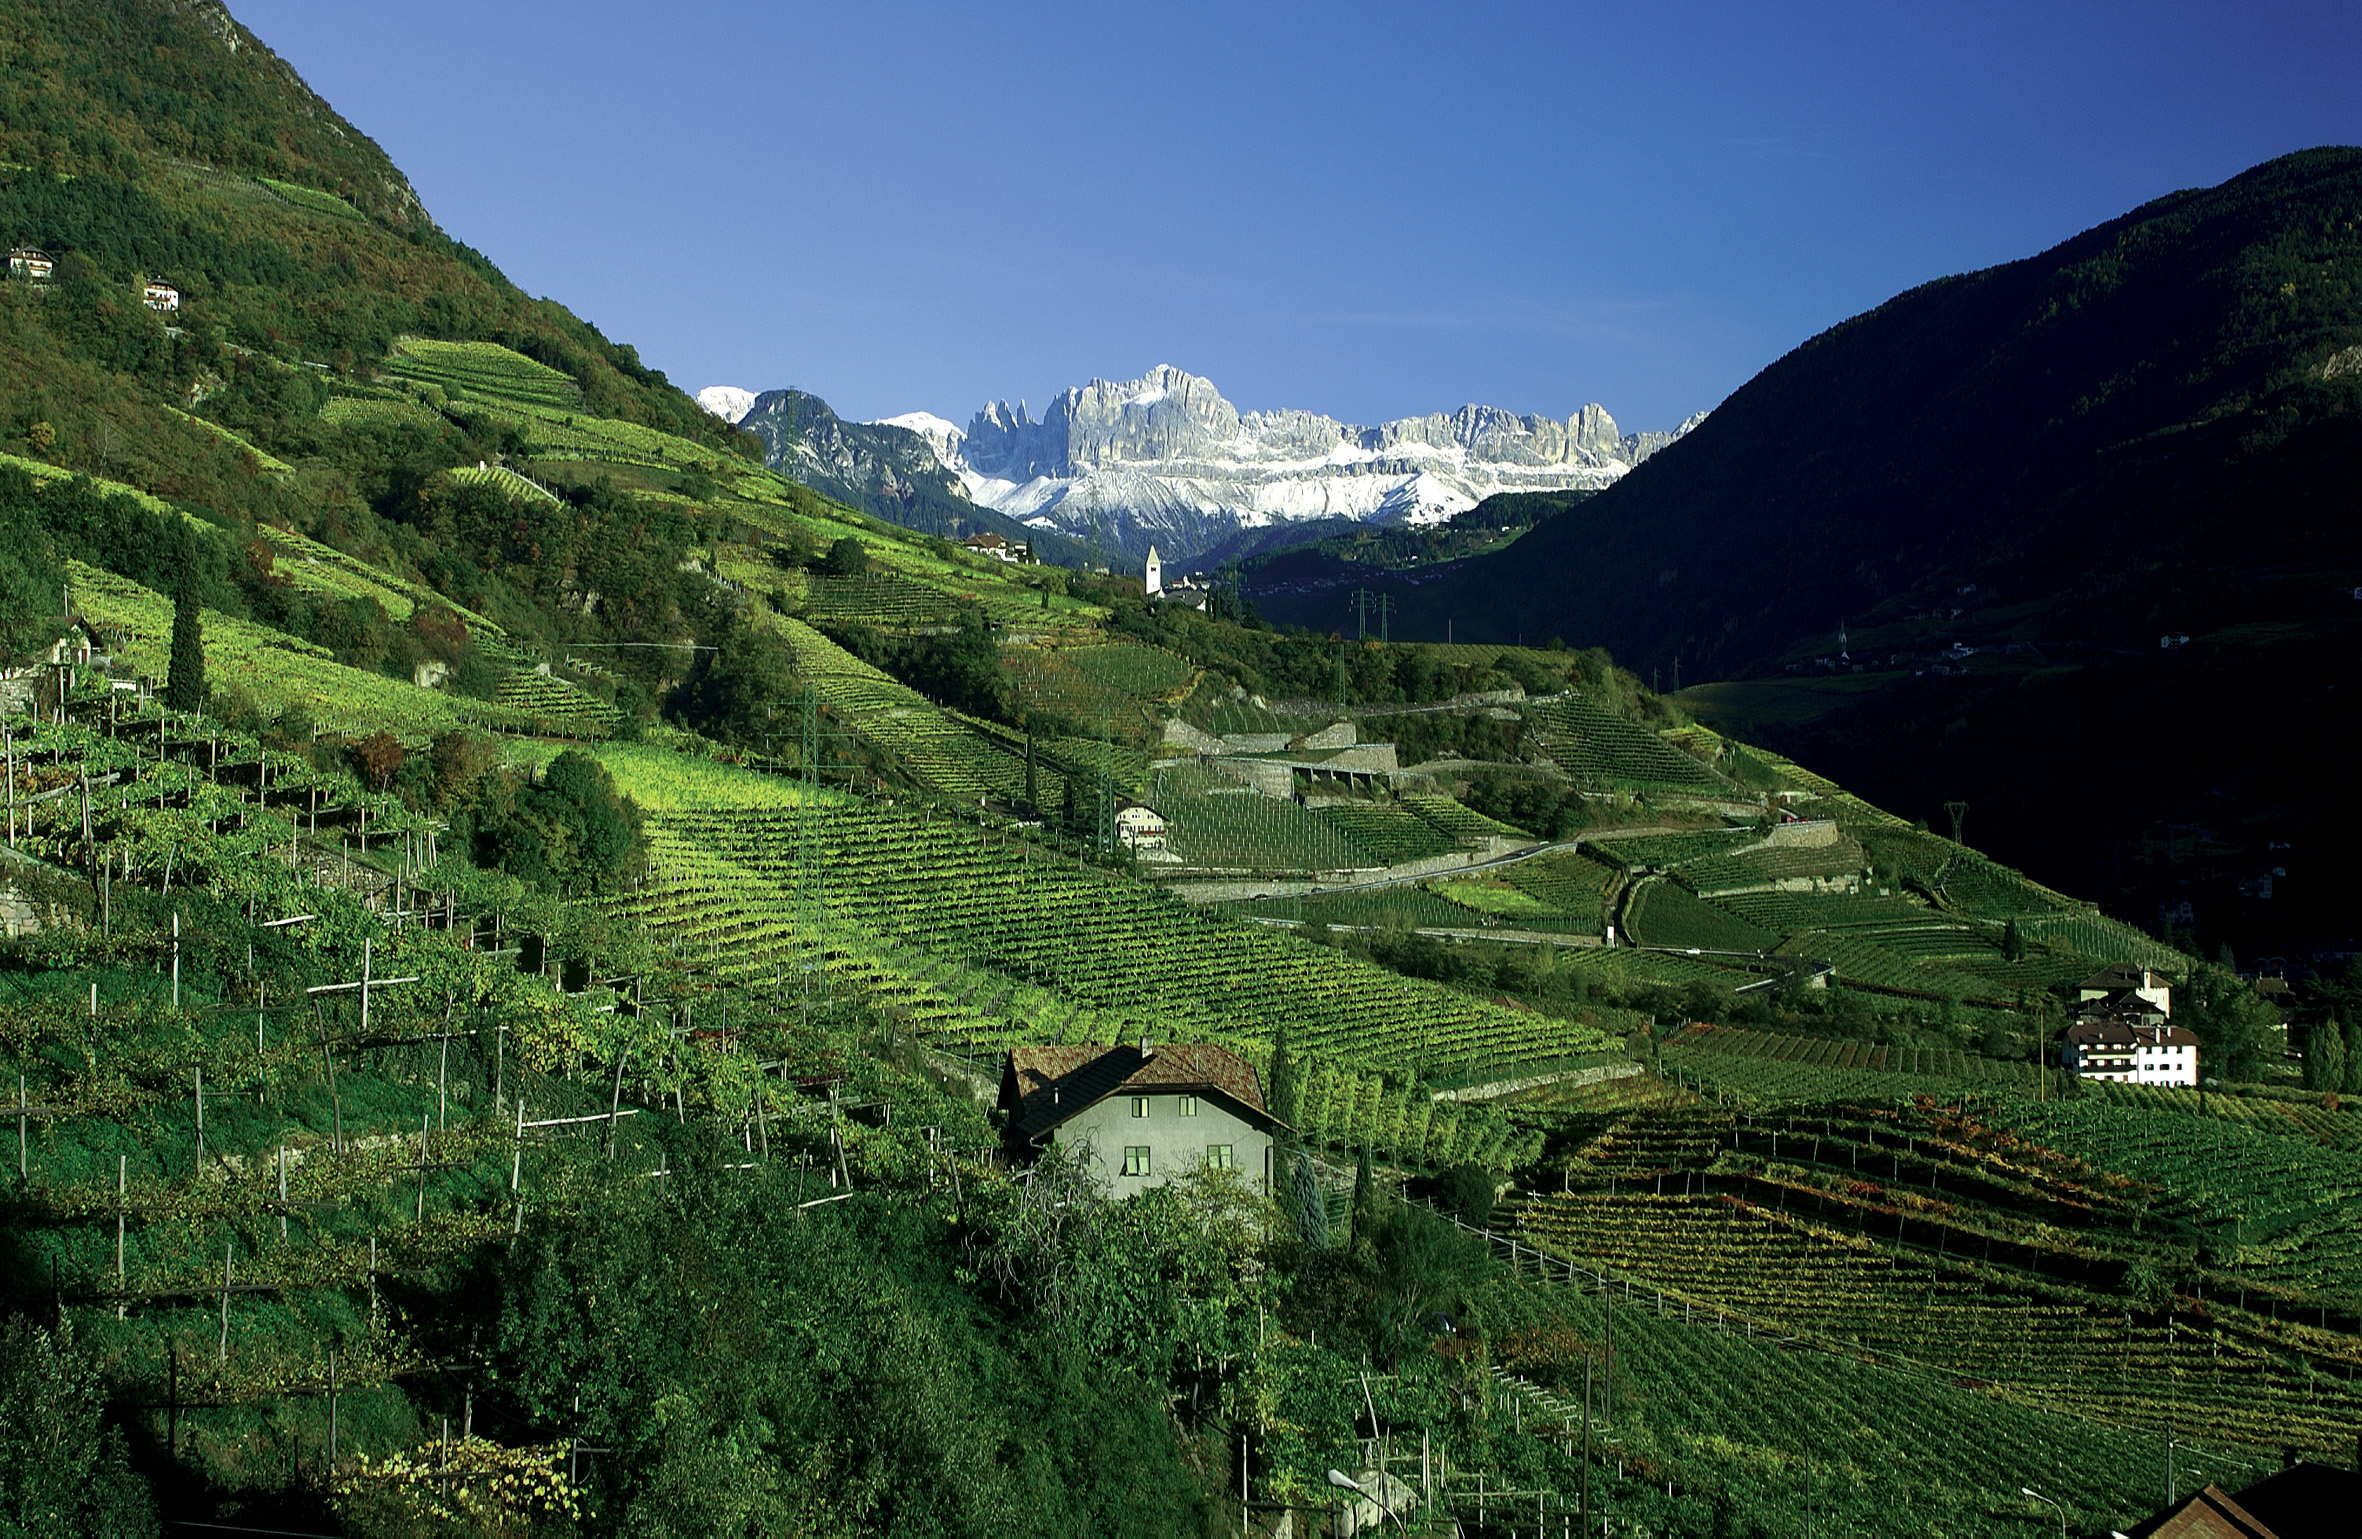 Vineyards in Alto Adige, Delle Venezie region, northern